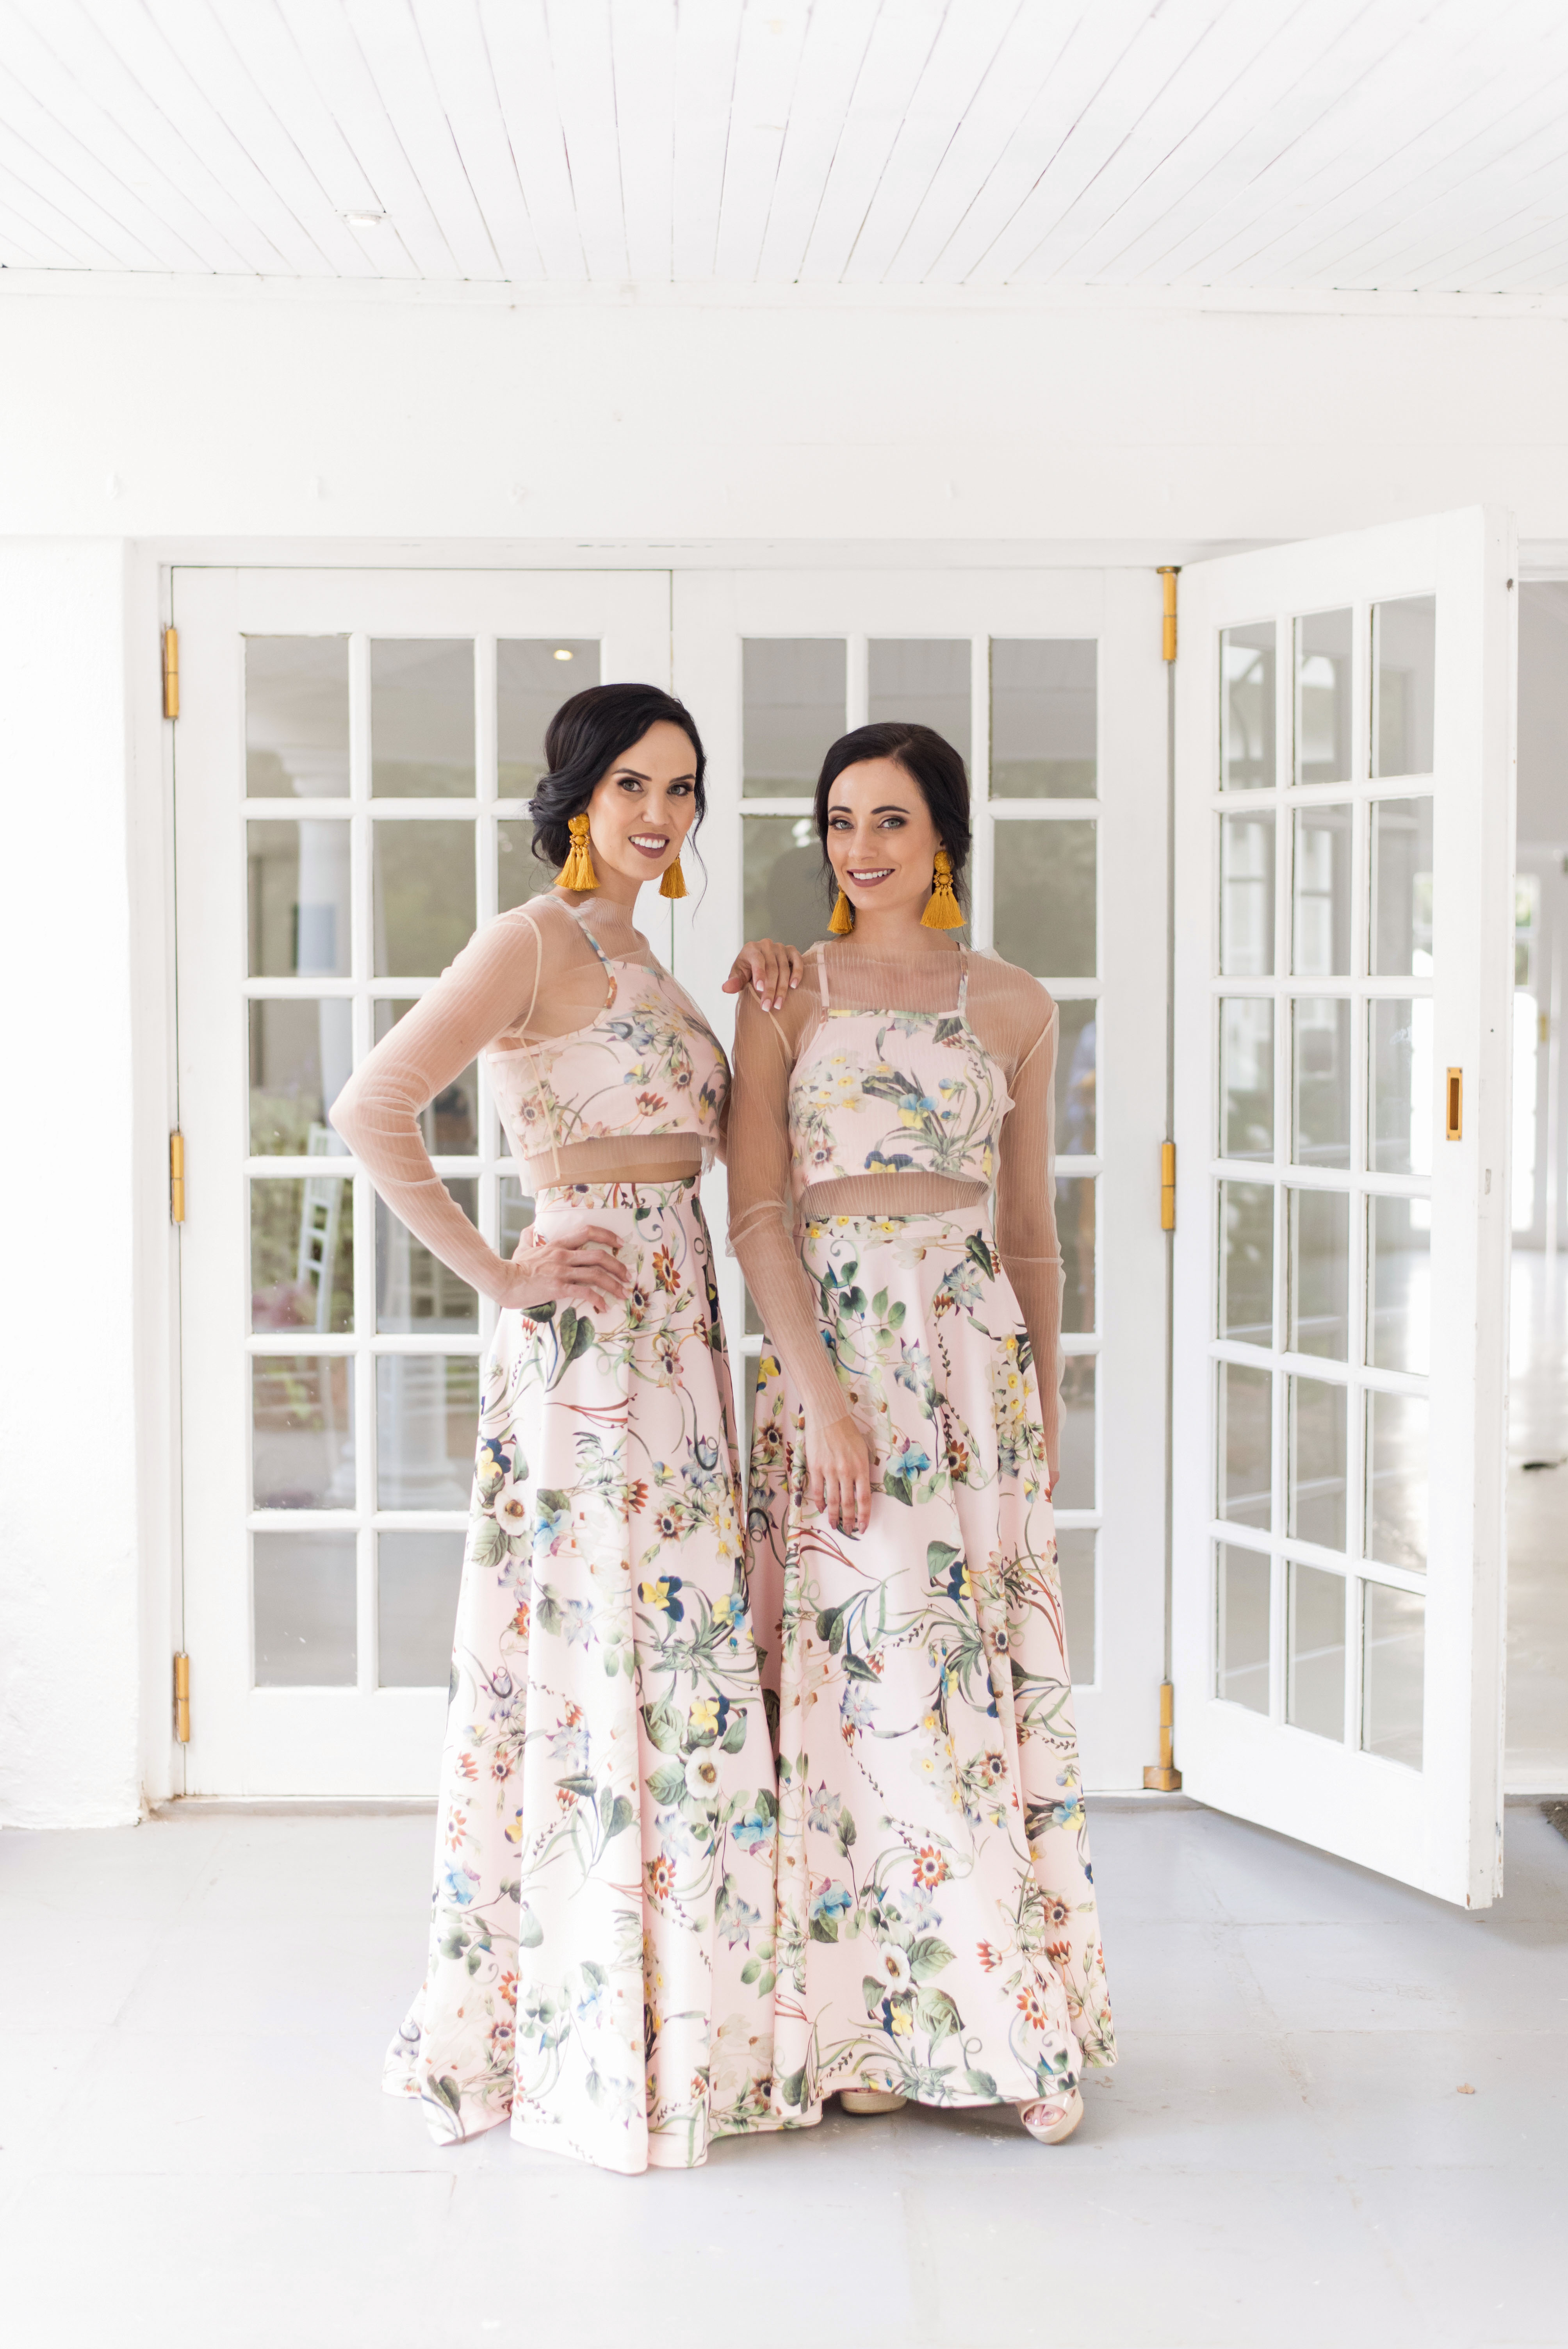 Trending Now: Two-Piece Bridesmaids' Looks